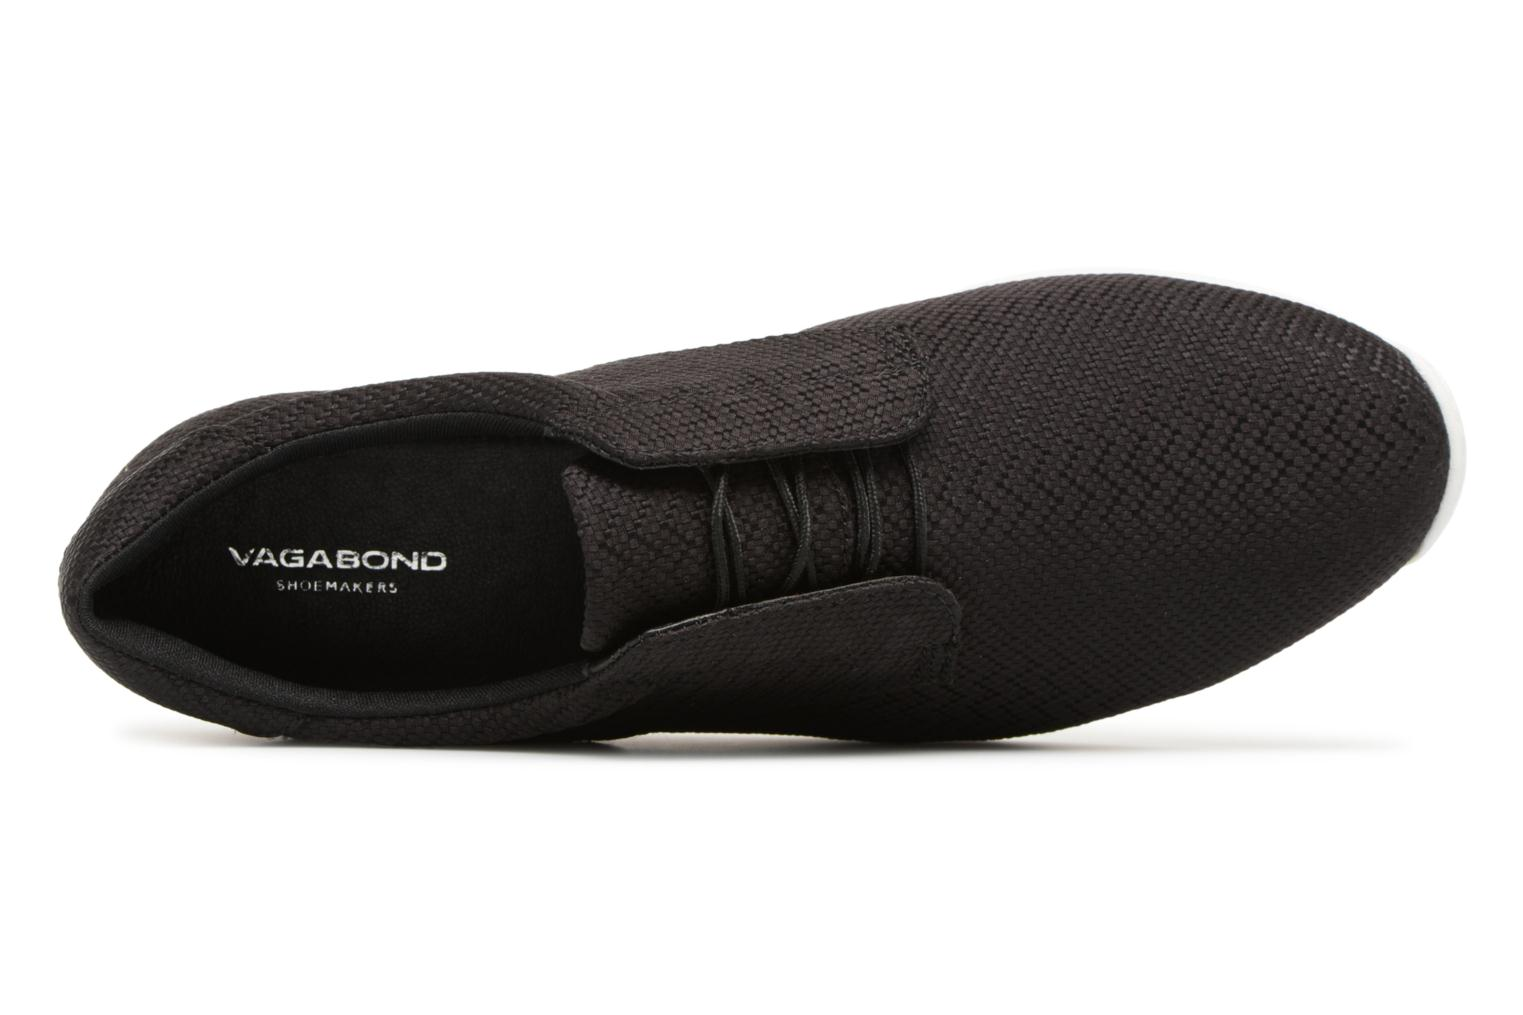 Black 4525 080 Vagabond Shoemakers 2 Kasai 0 czYvzUqwx8